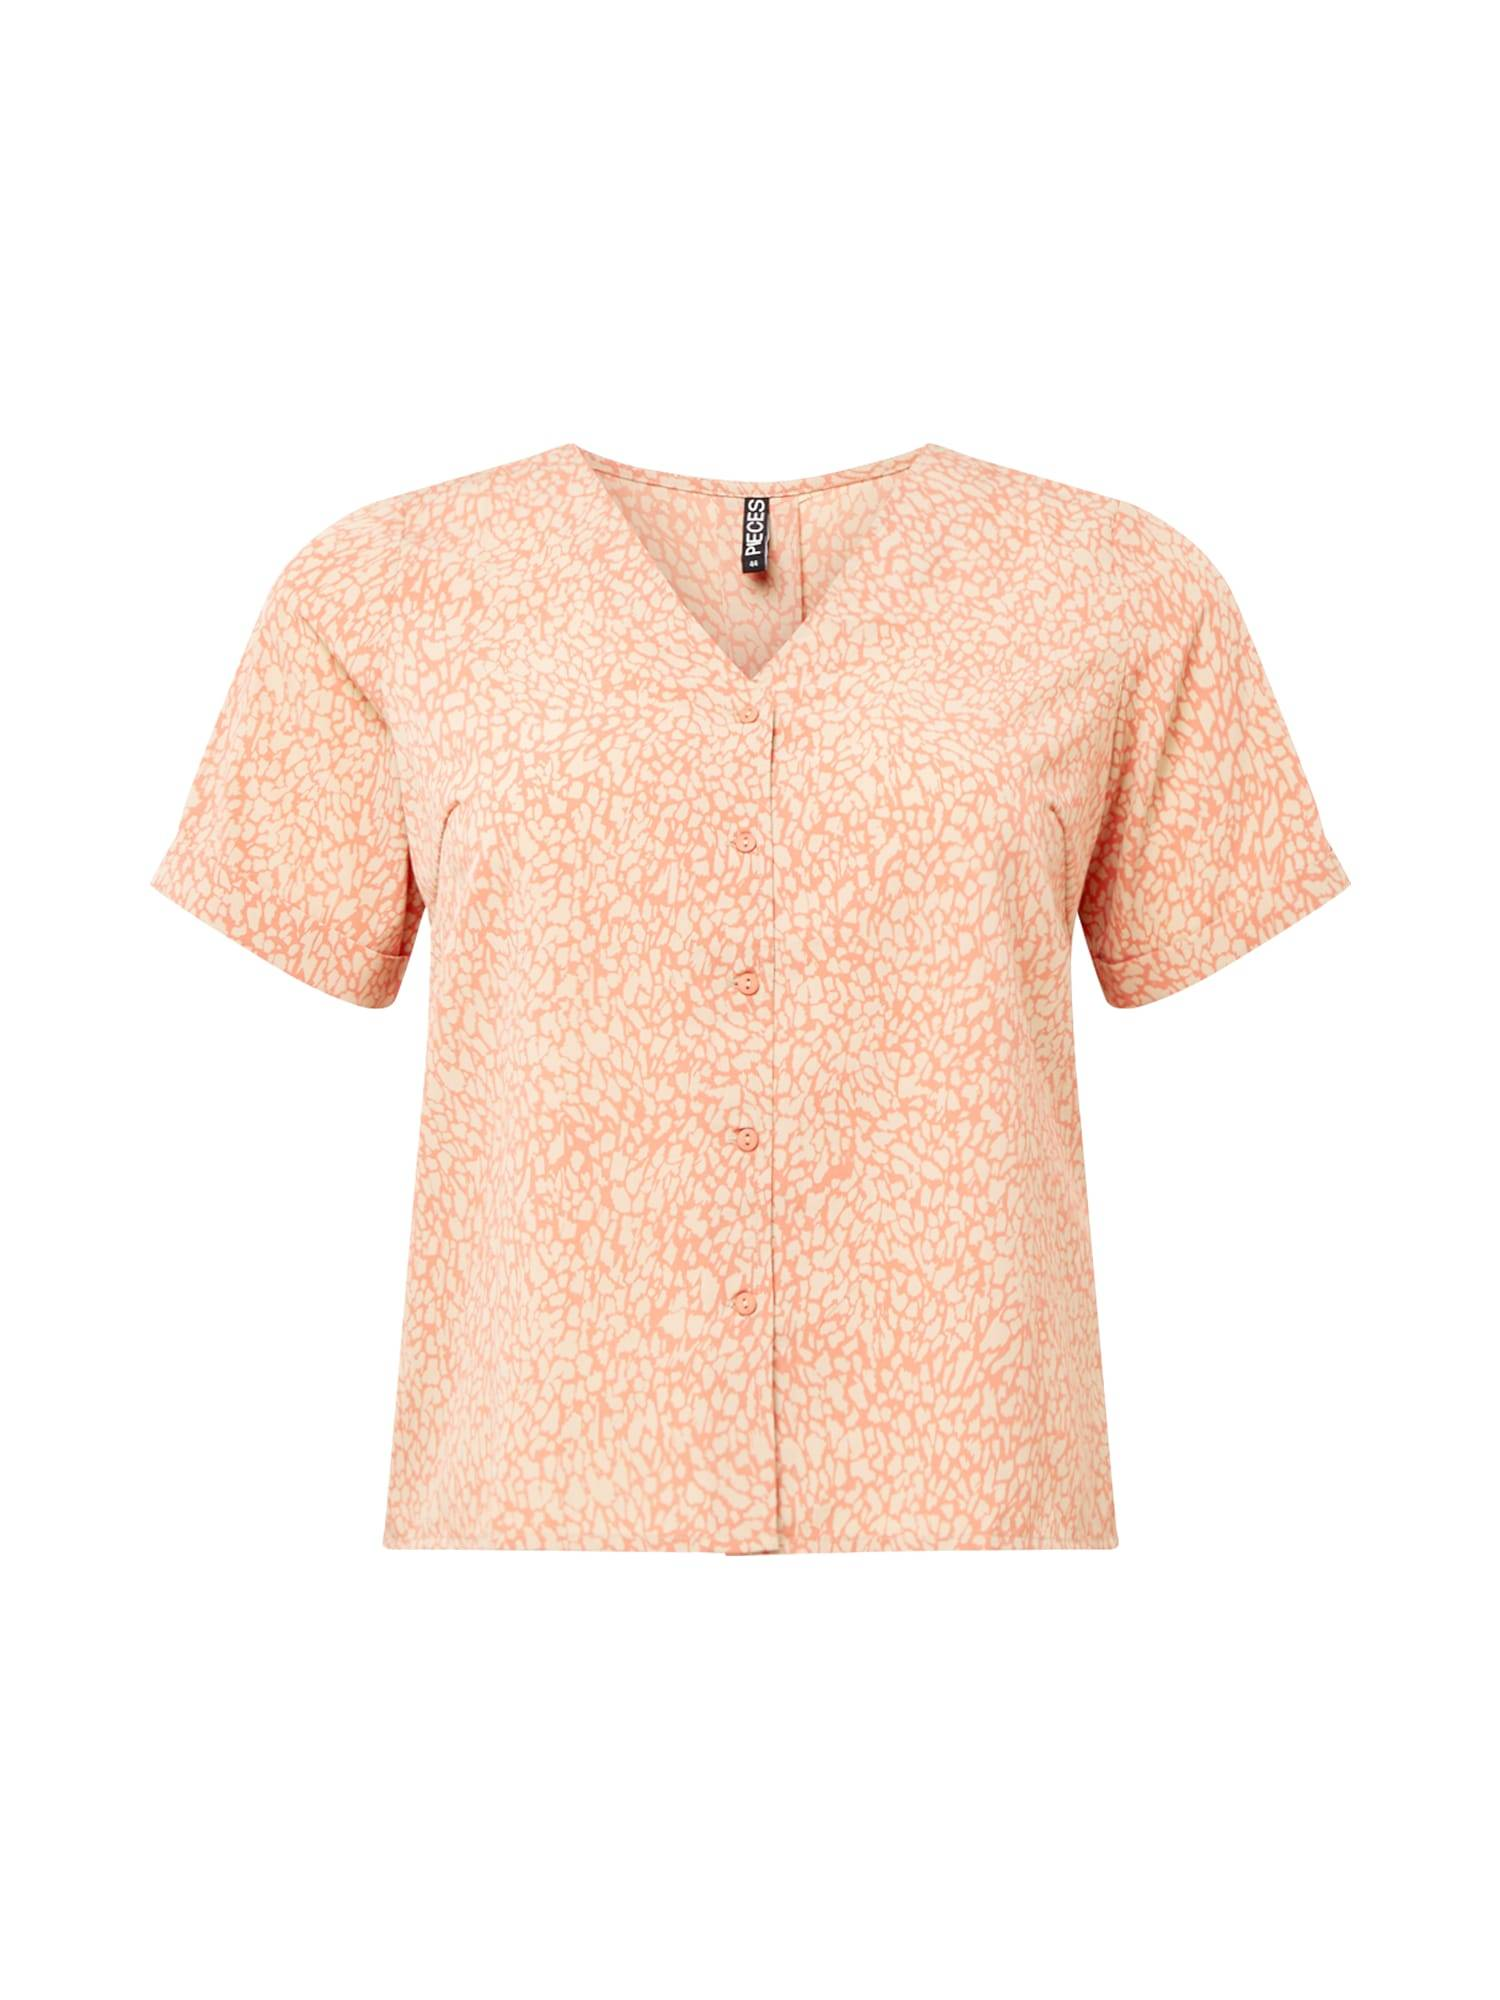 PIECES (Curve) Chemisier 'GILBERTA'  - Orange - Taille: 48 - female